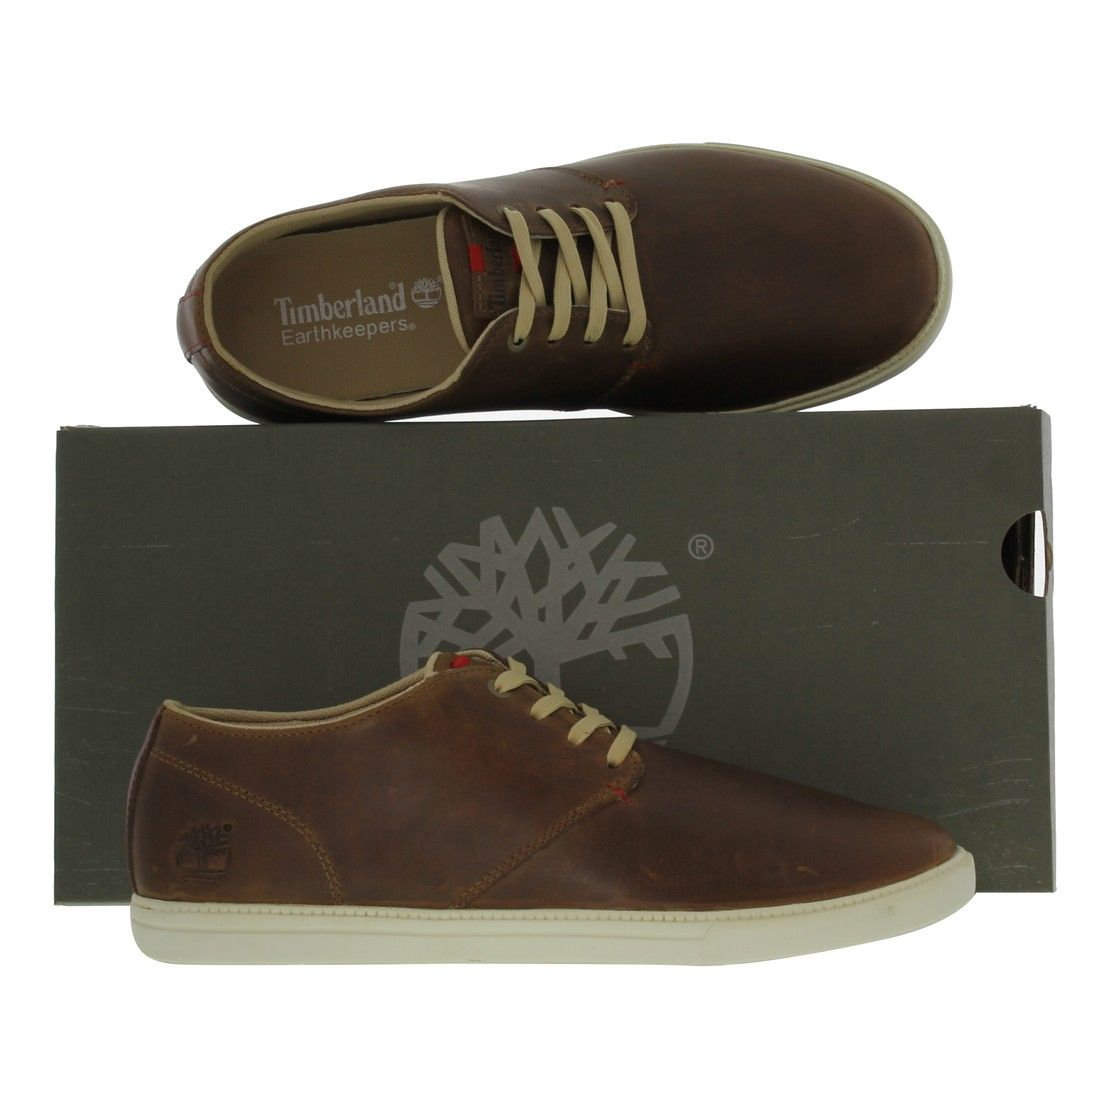 Timberland Mens Earthkeeper Fulk Low Shoes Light Brown - £69.99